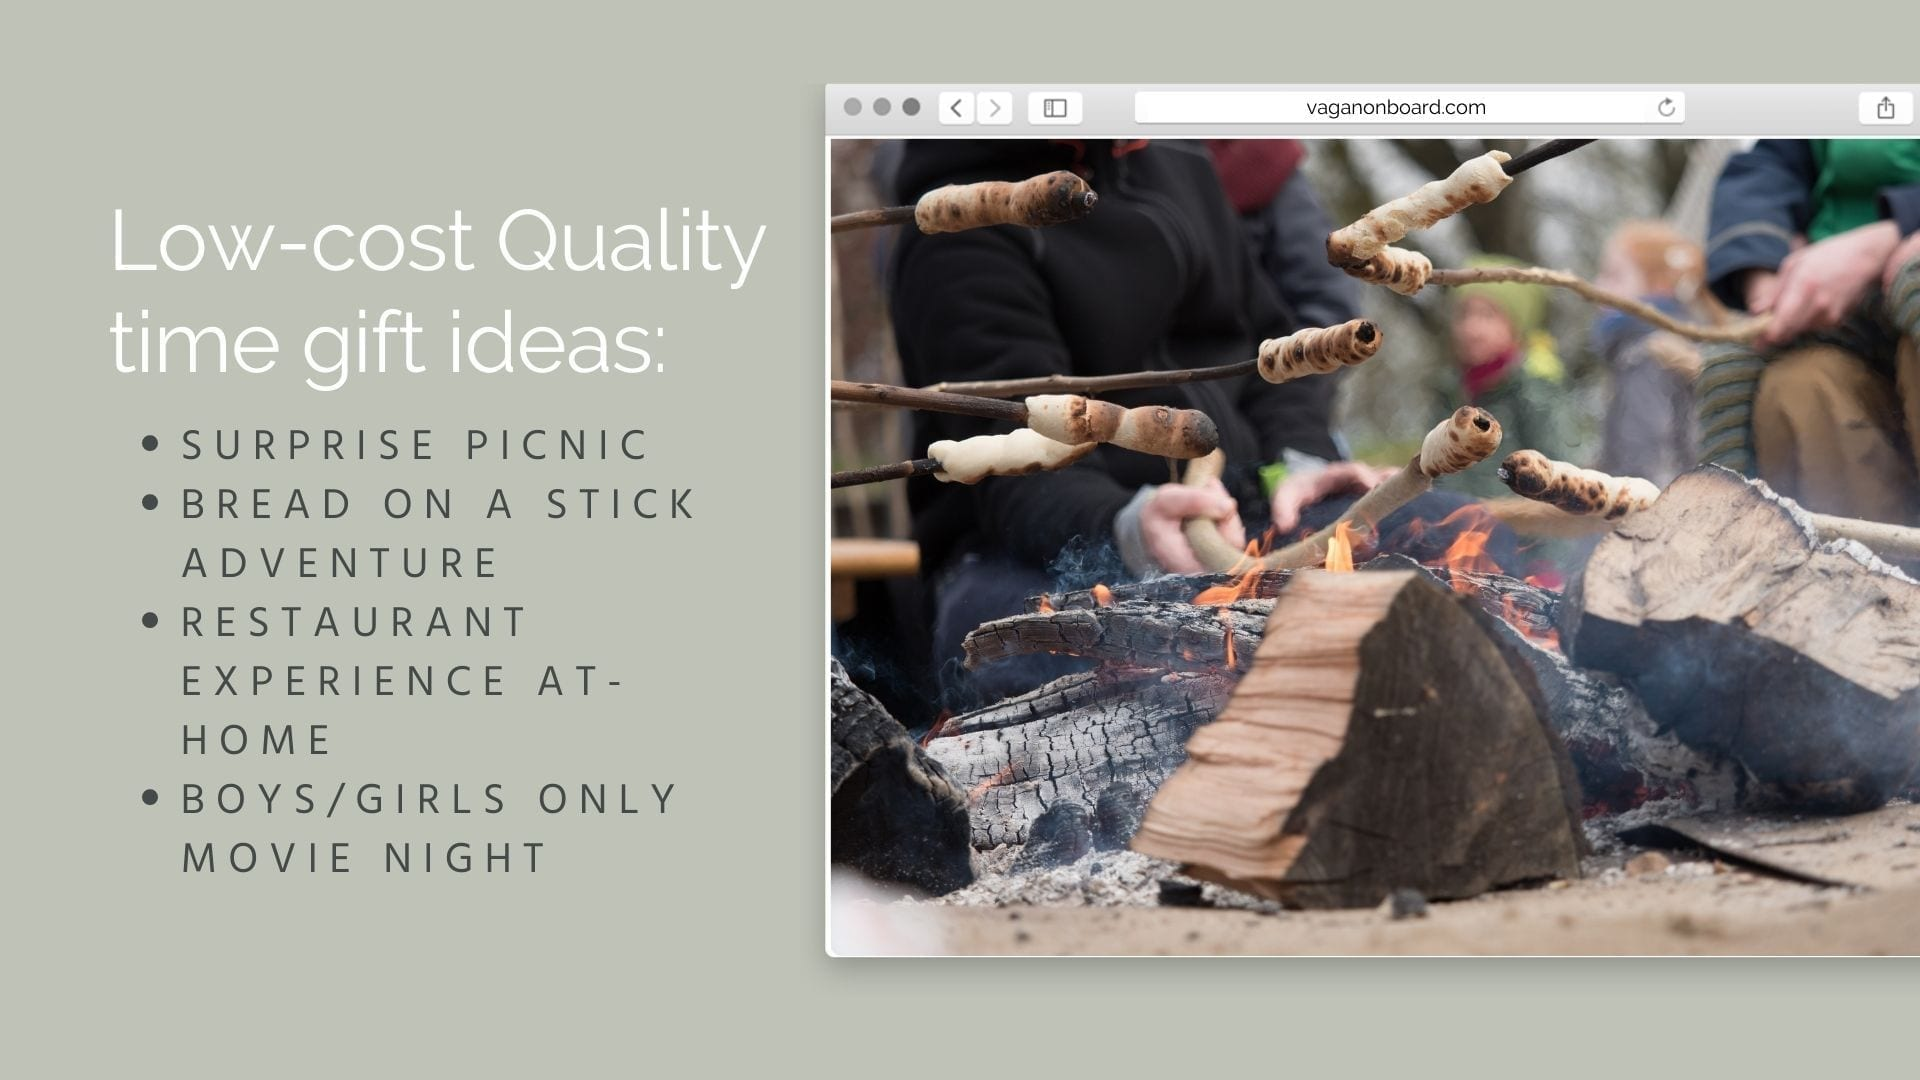 Ideas for low-cost quality time gifts, photo of bread on sticks fire adventure